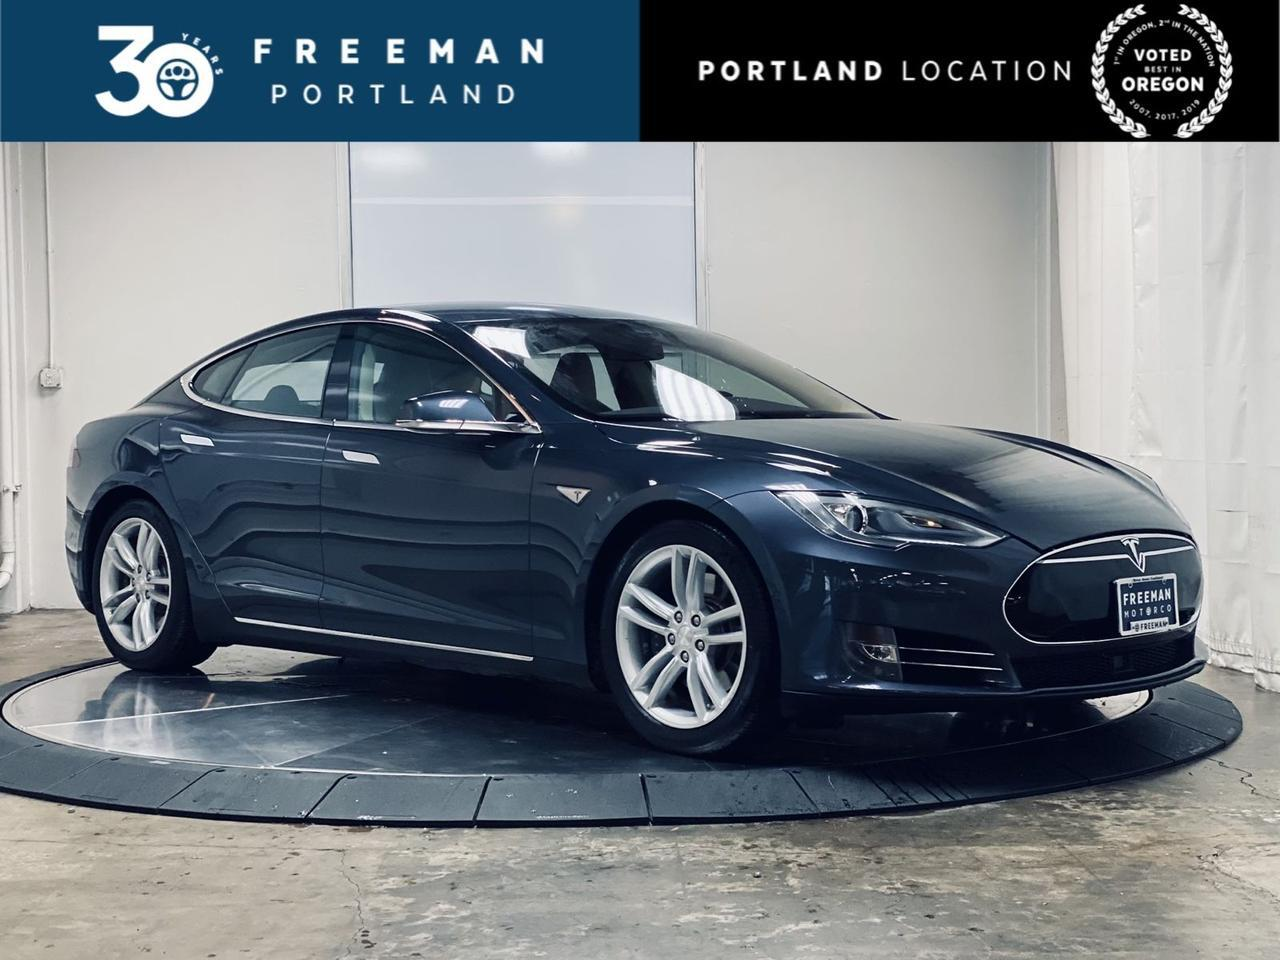 2014 Tesla Model S 85 kWh Panoramic Heated Seats Auto pilot Portland OR